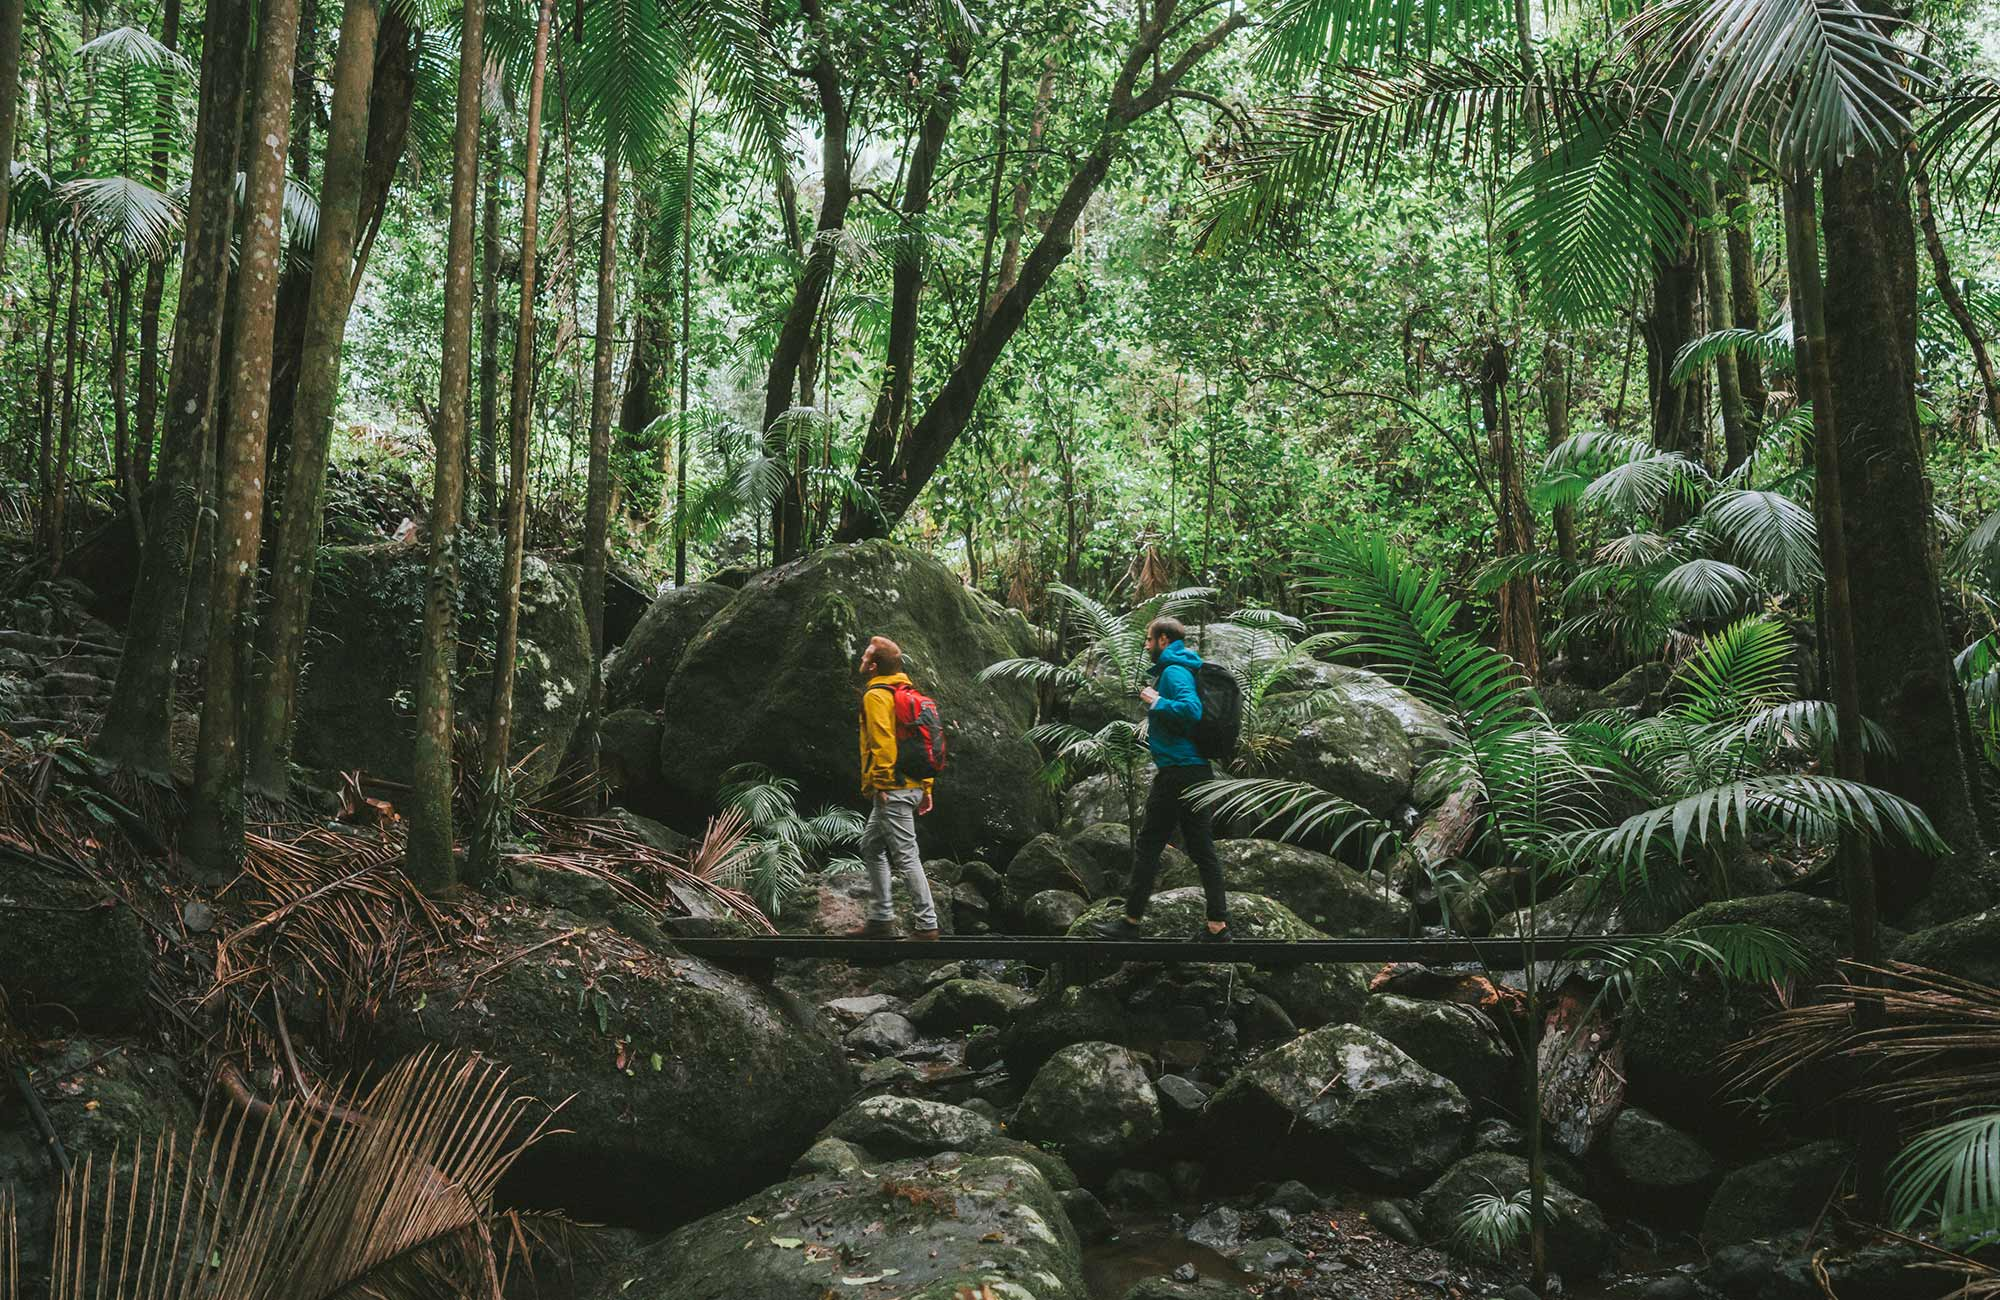 Two men cross a rainforest creek on a walk in Border Ranges National Park. Photo credit: Branden Bodman © Branden Bodman